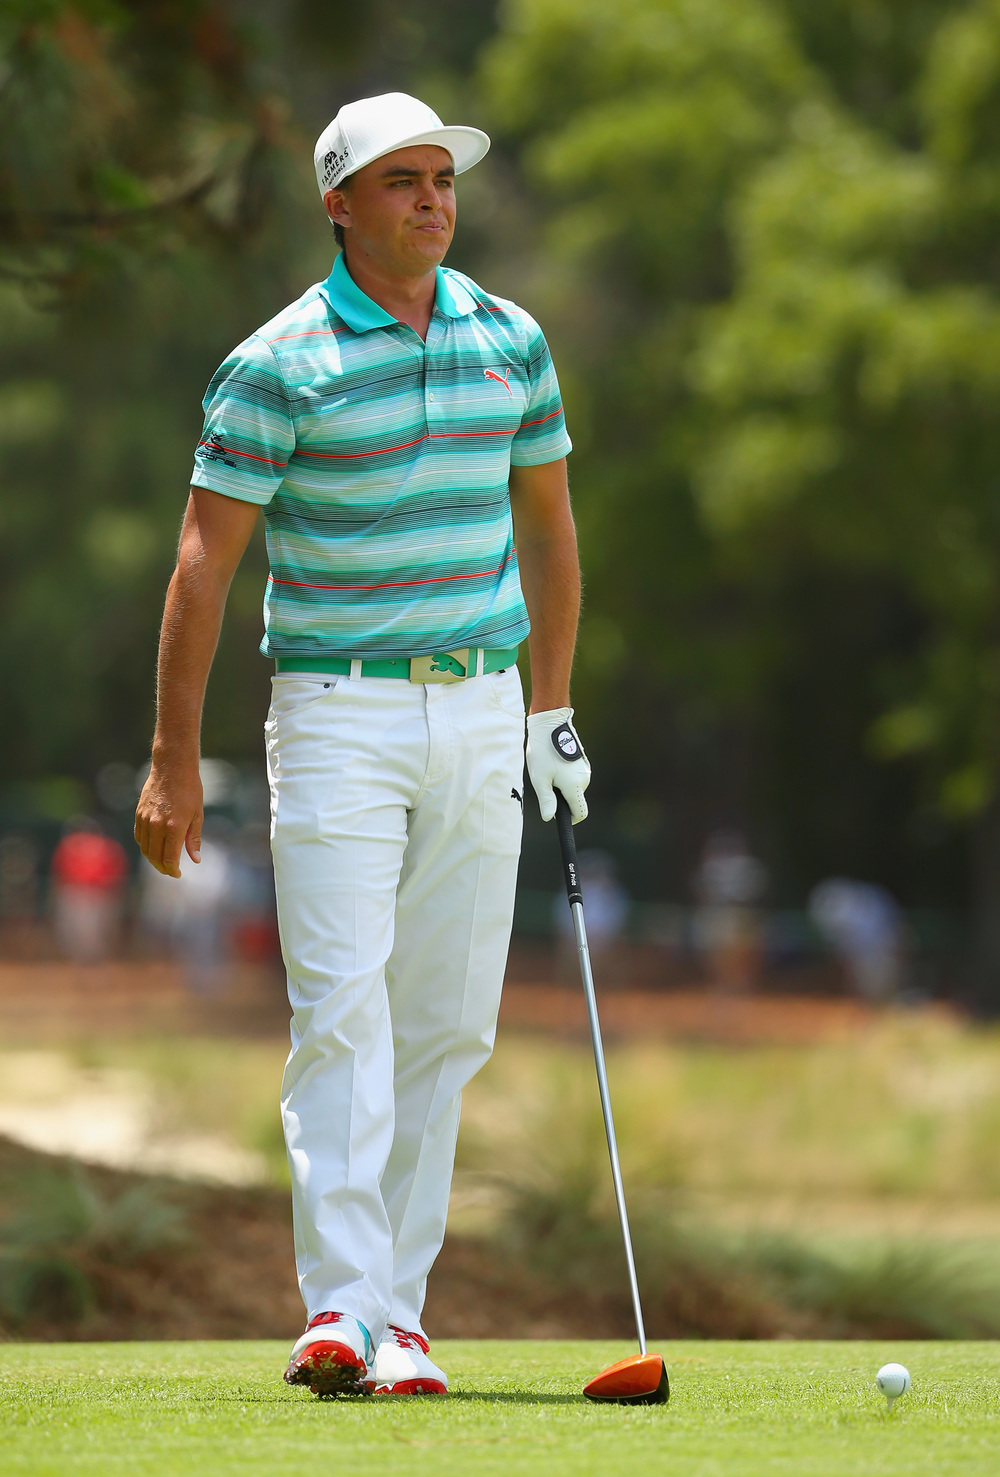 rickie-fowler-us-open-pinehurst-2014-saturday.jpg